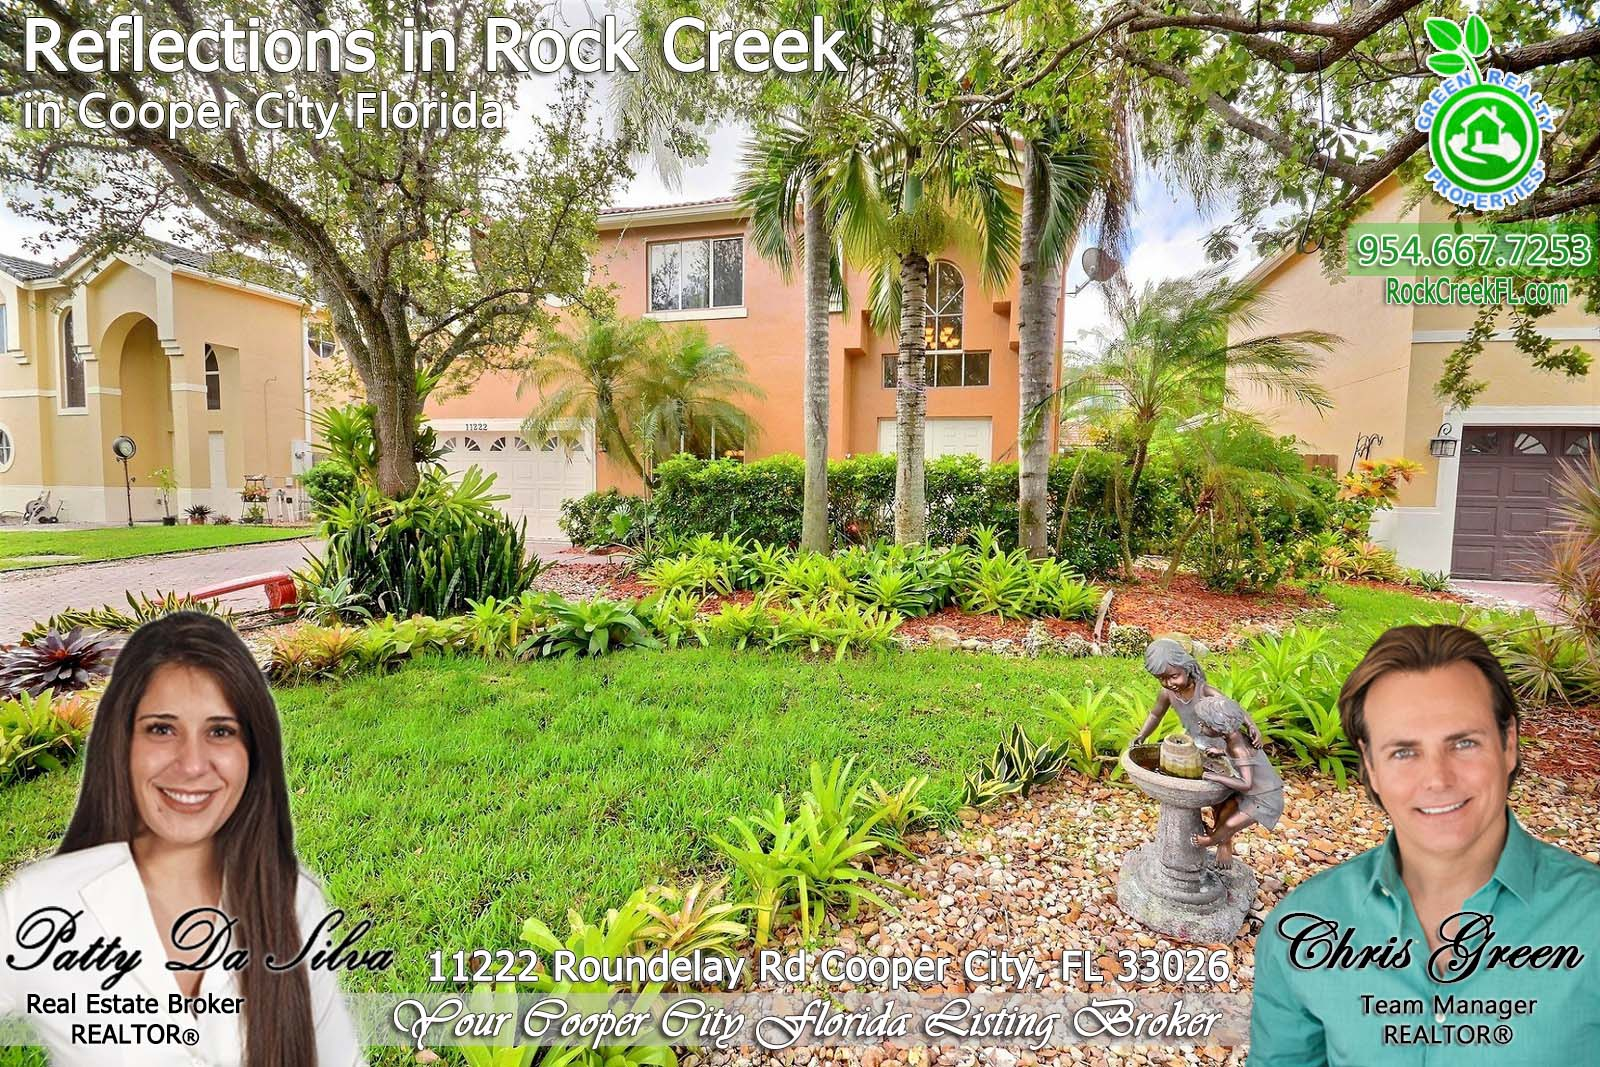 Cooper City Homes For Sale - Reflections in Rock Creek Homes Fo Sale (2)